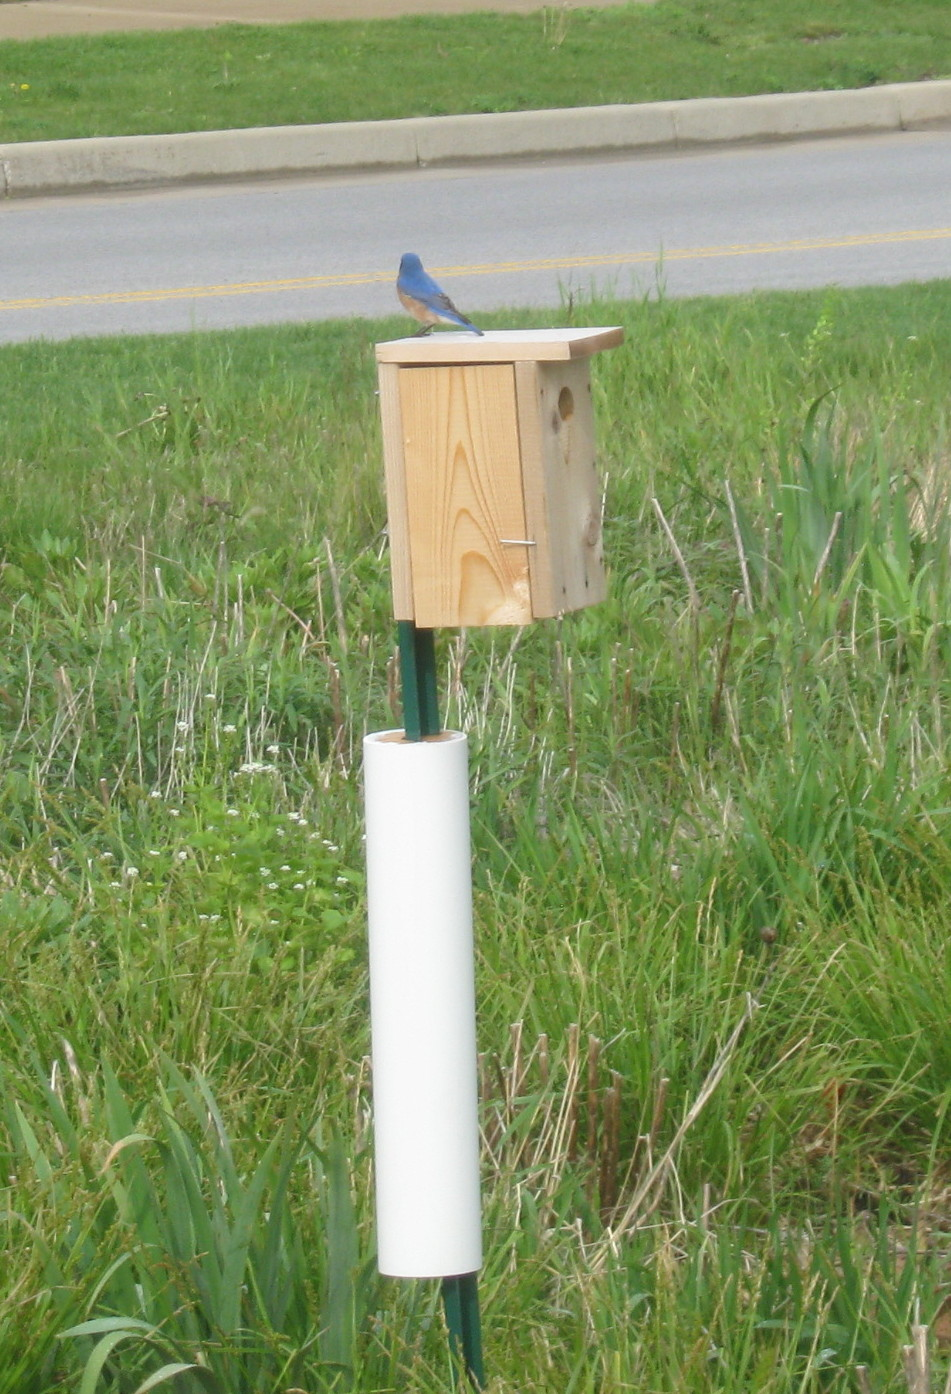 Blue birds nesting at Sturdy Road roundabout